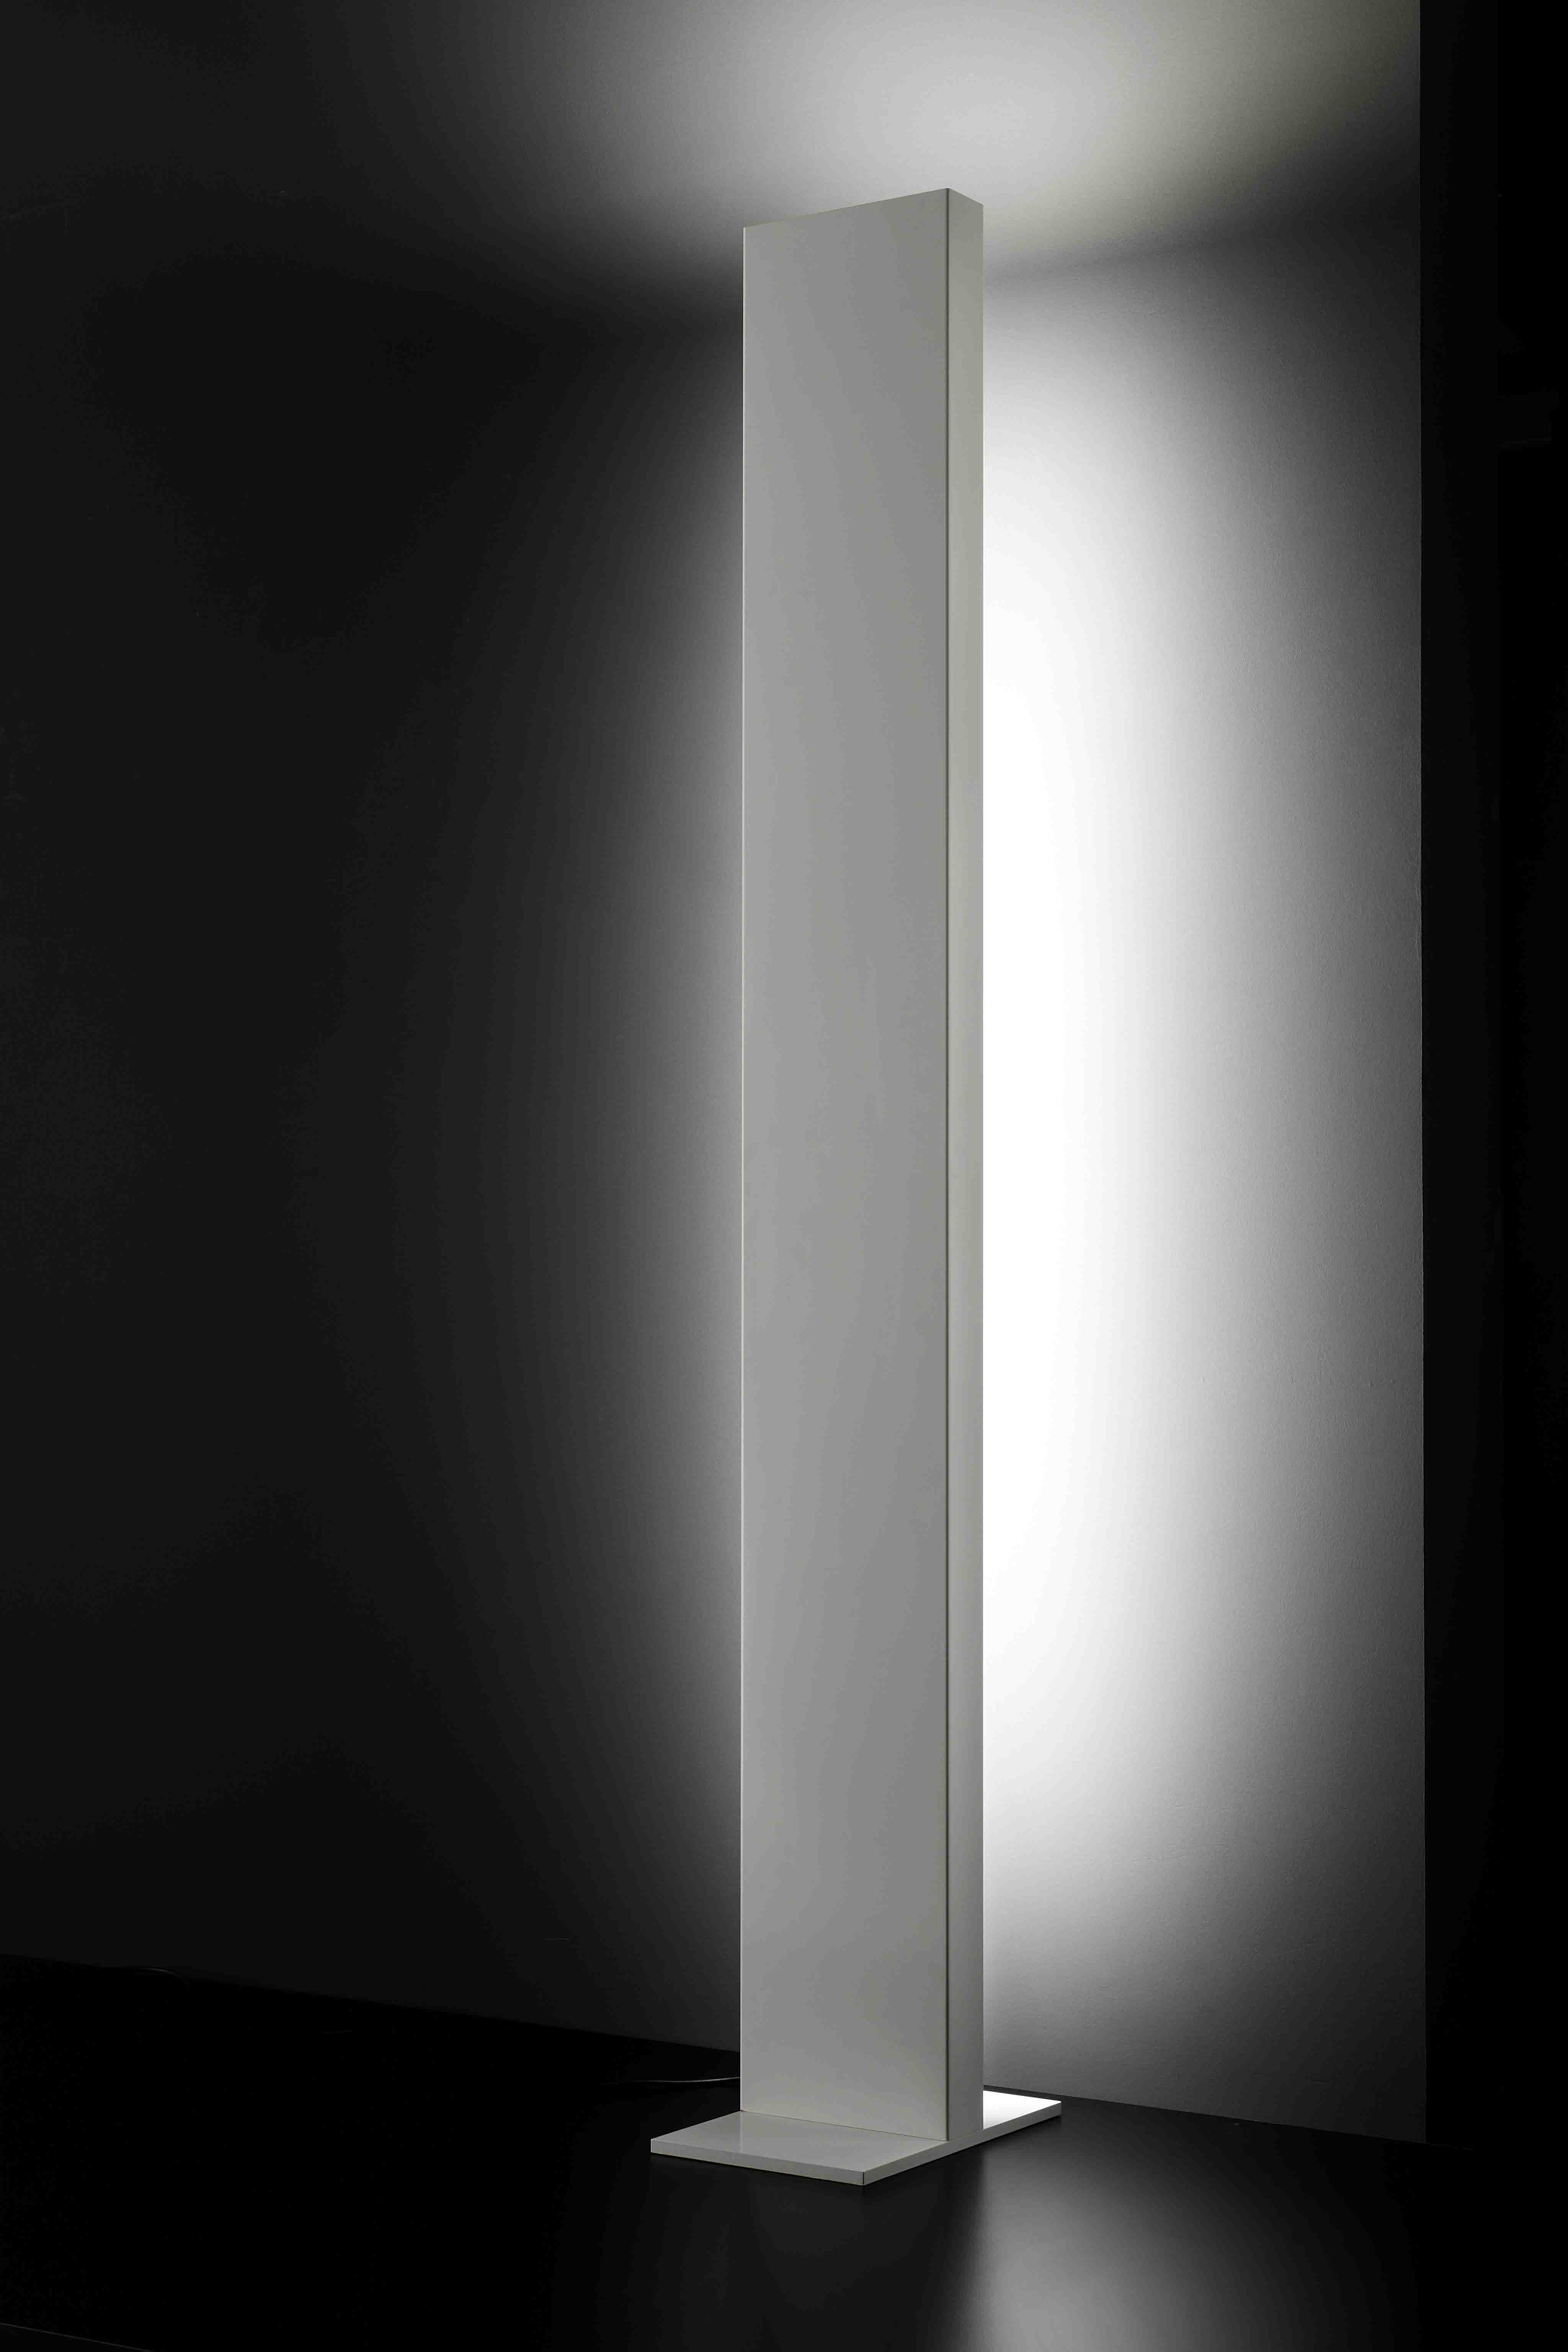 diffused lighting fixtures. Diffused Lighting Fixtures _